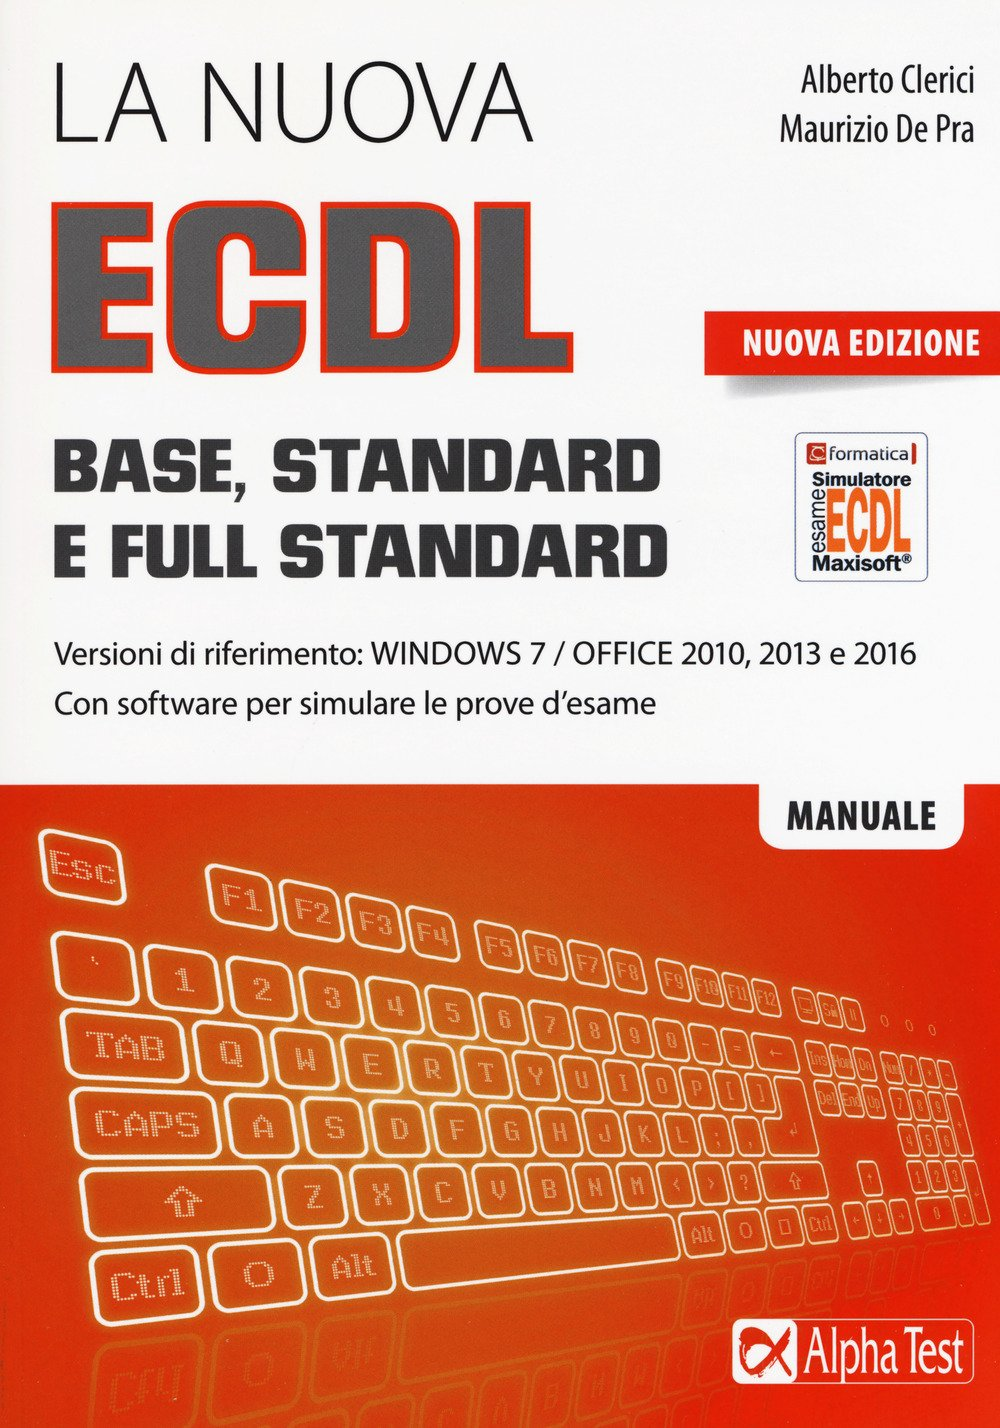 La nuova ECDL Base, Standard e Full Standard. Per Windows 7, Office 2010, 2013 e 2016 Copertina flessibile – 8 giu 2017 Alberto Clerici Alpha Test 8848319734 Informatica